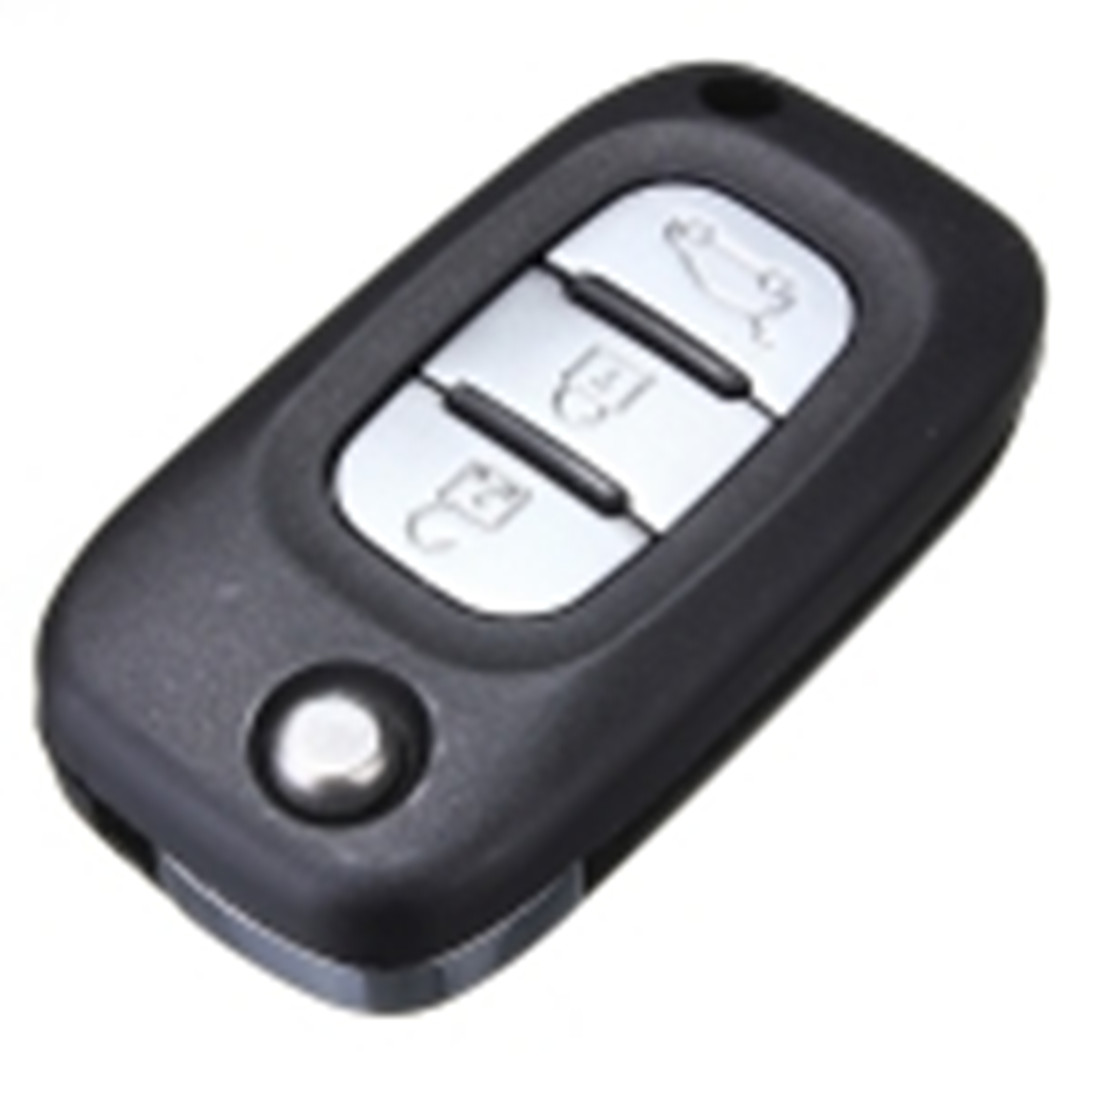 3 button remote key fob shell case blank for renault clio kangoo megane modus uk. Black Bedroom Furniture Sets. Home Design Ideas